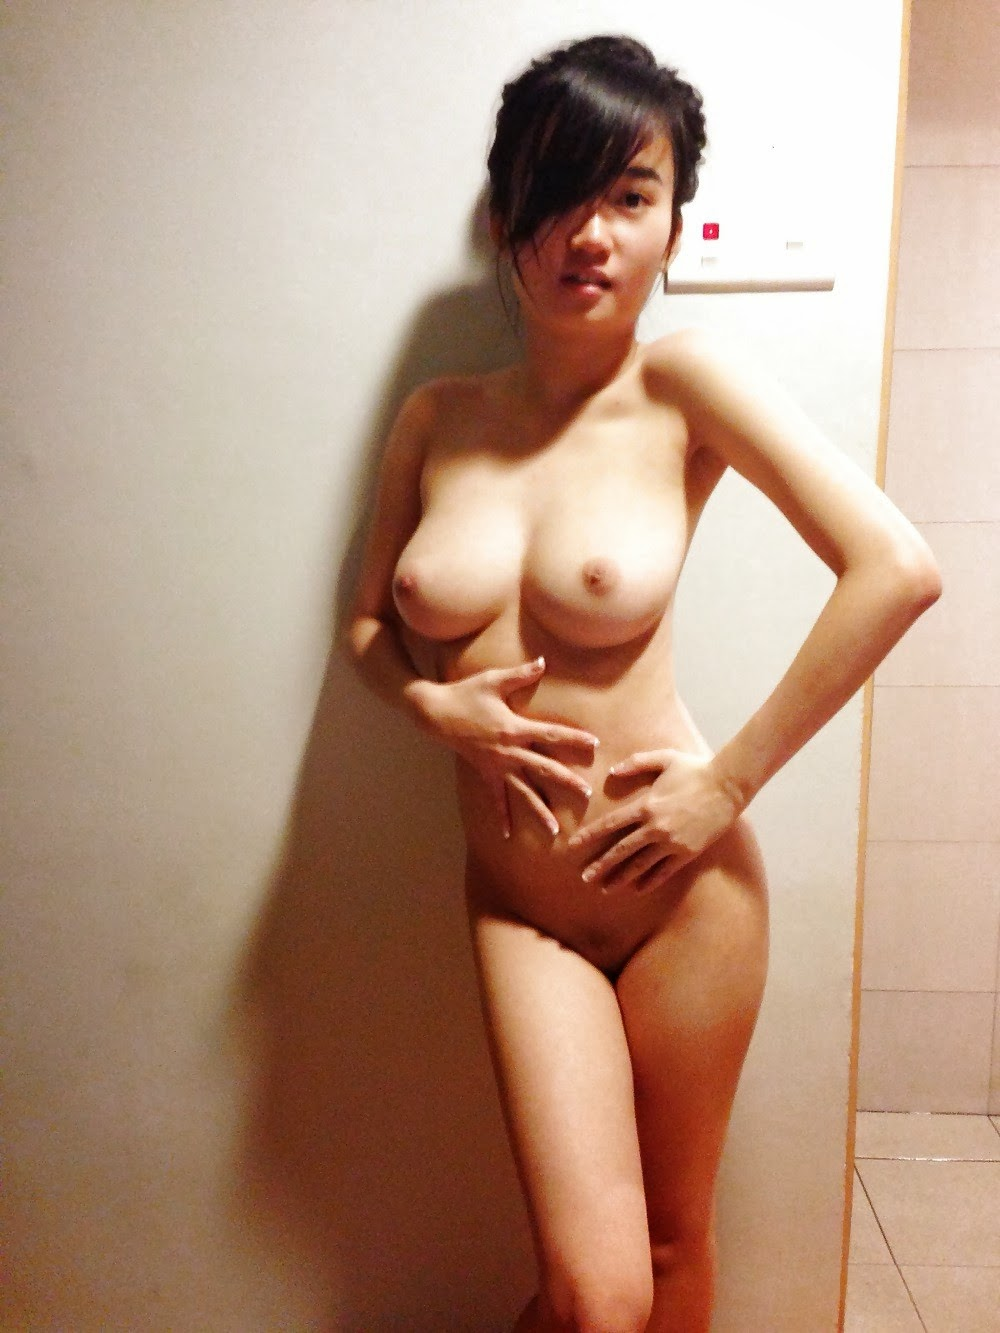 Not logical singapore naked girl model